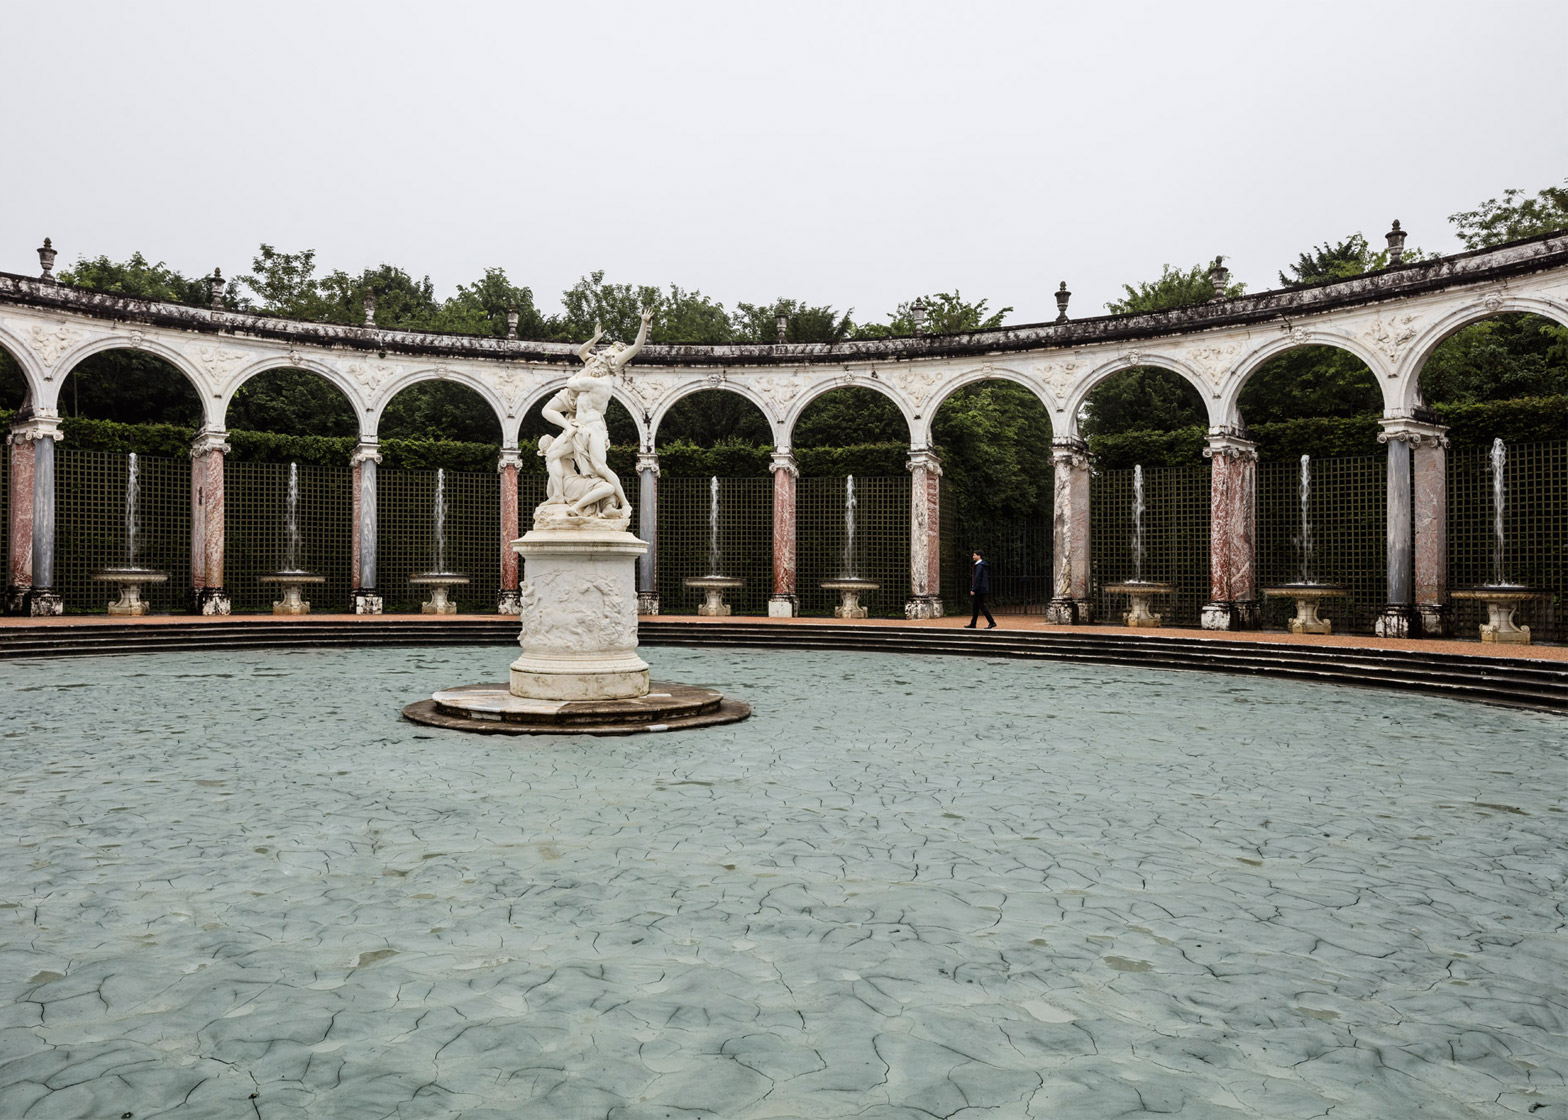 Glacial Rock Flour Garden by Olafur Eliasson at the Palace of Versailles, France